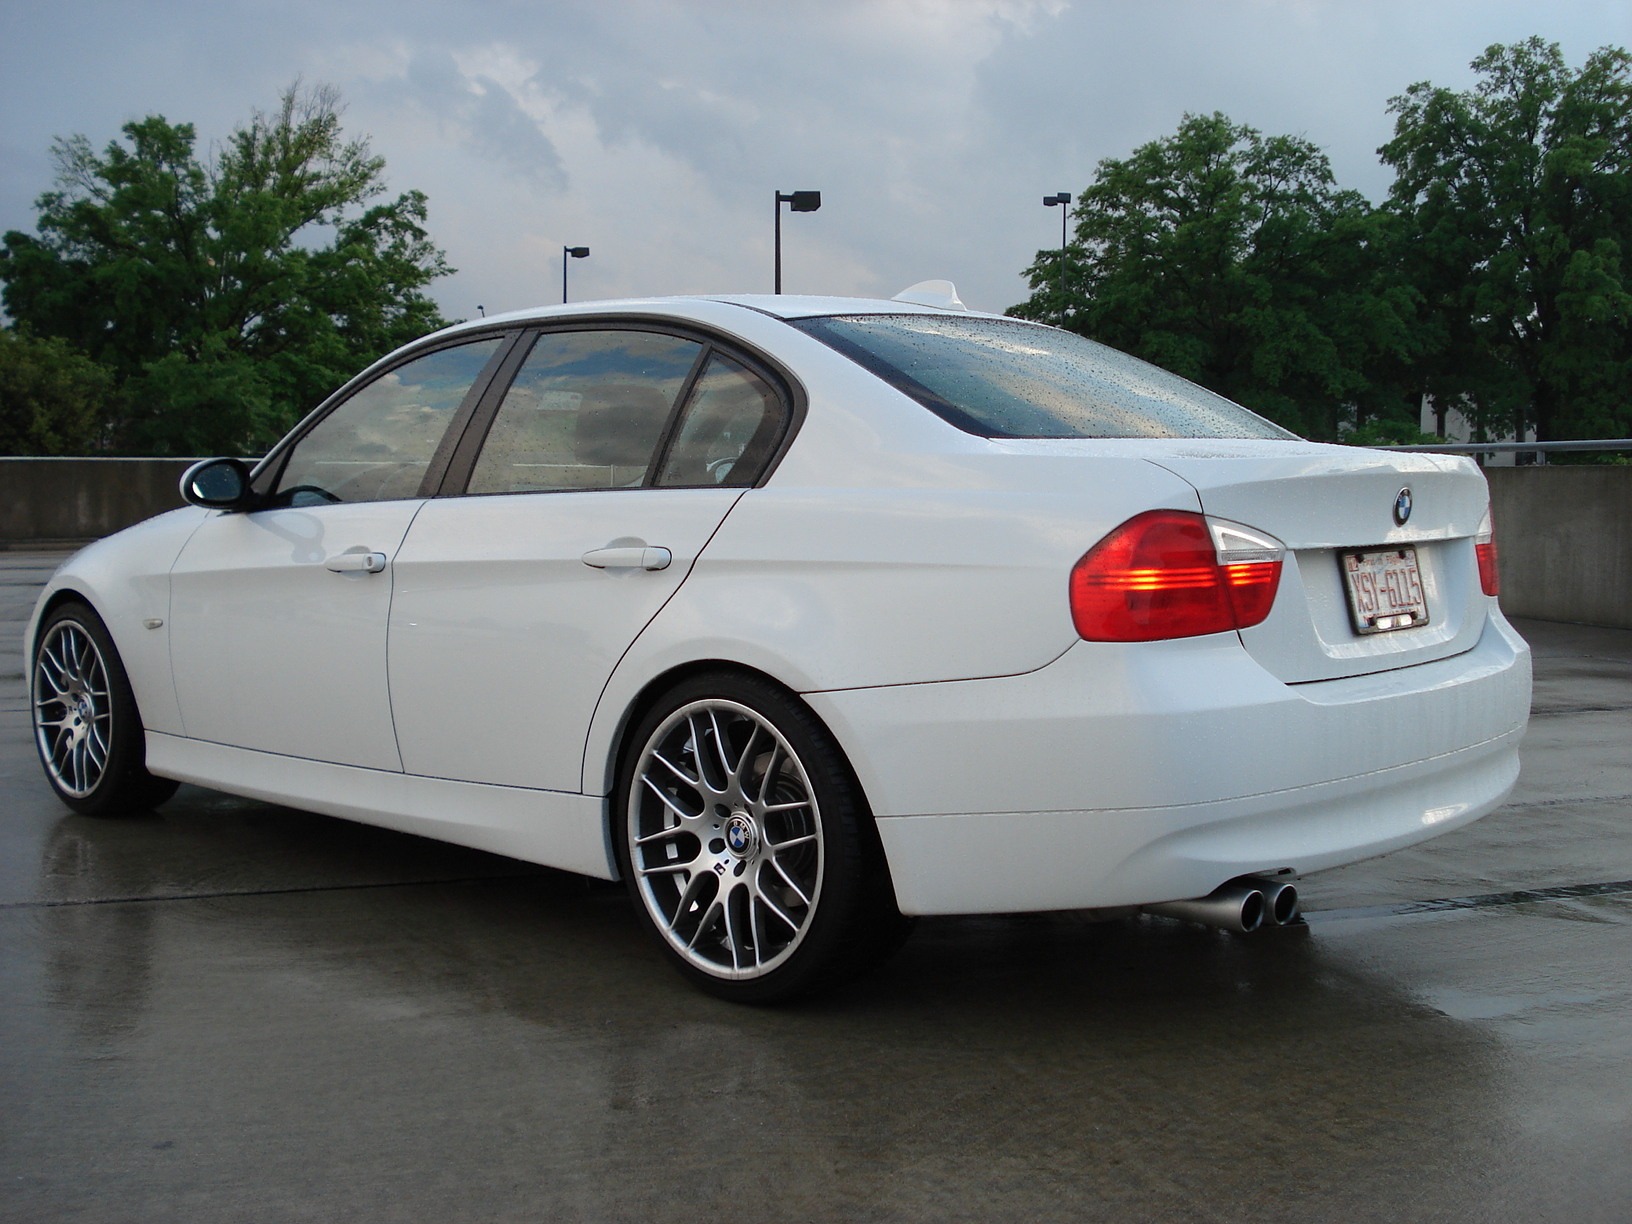 Fs 4 Hyper Silver Miro Csl 19 Quot Staggered Wheels No Tires Great Conditon Cheap